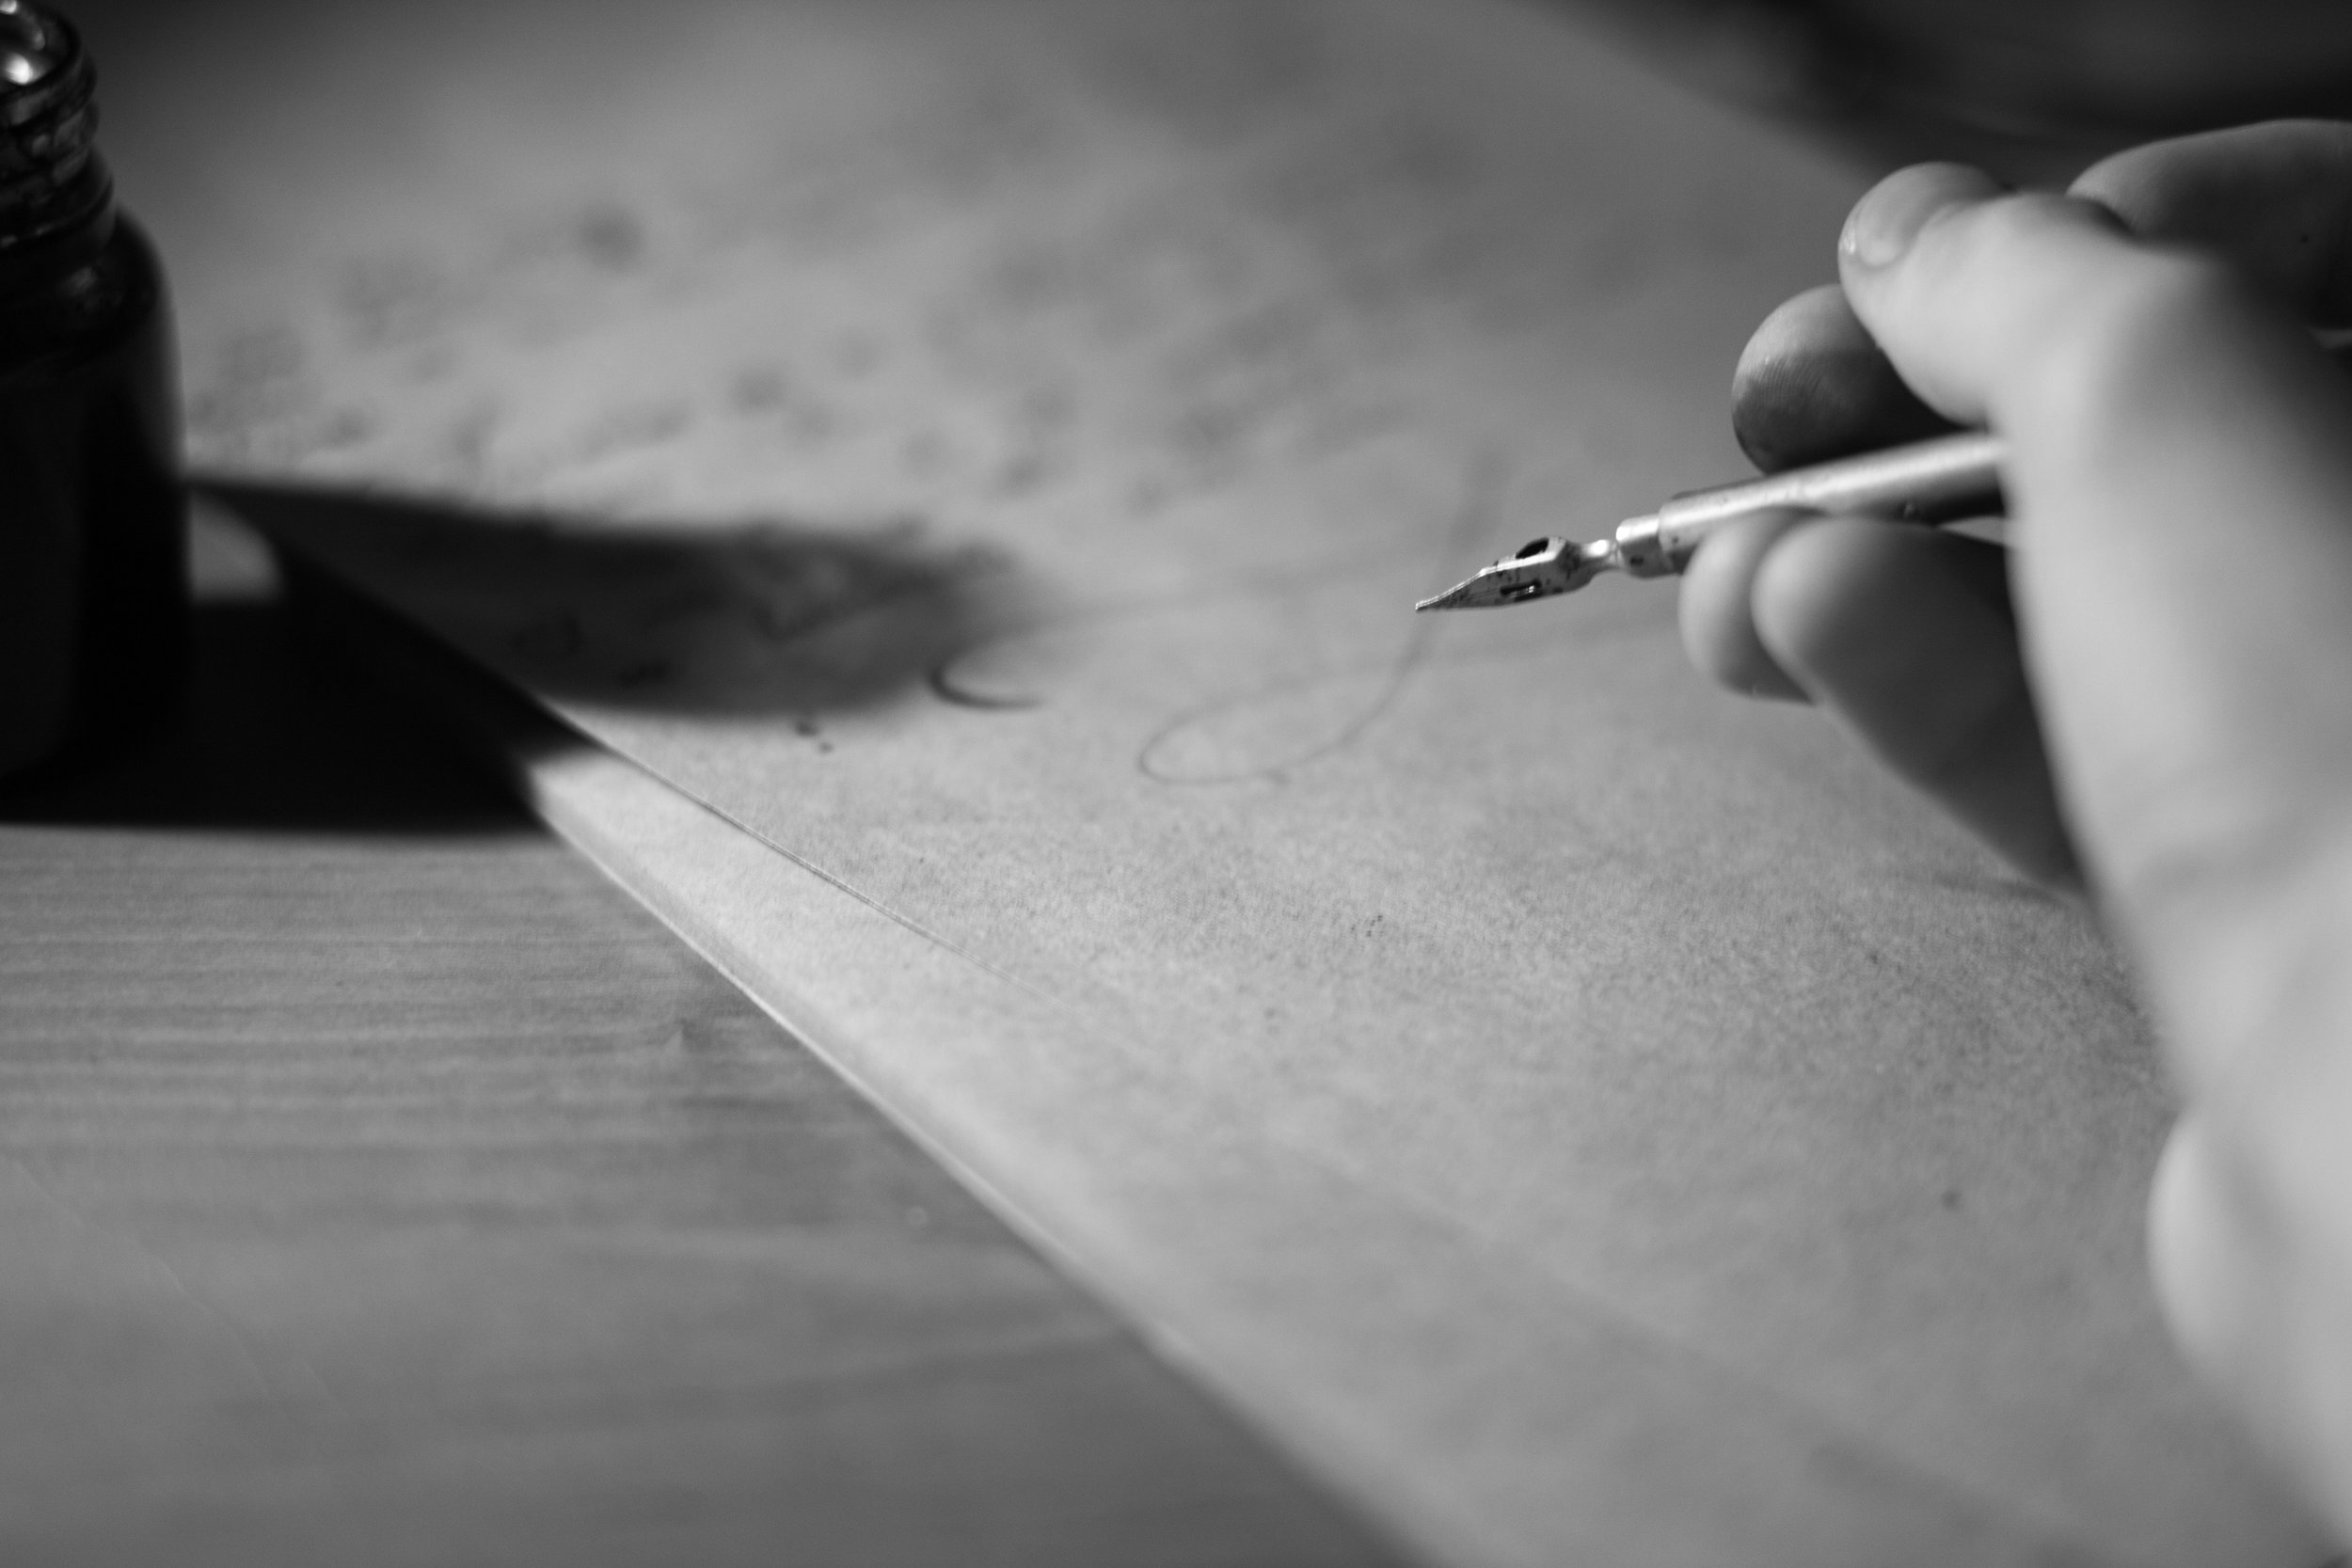 A hand writes using a quill